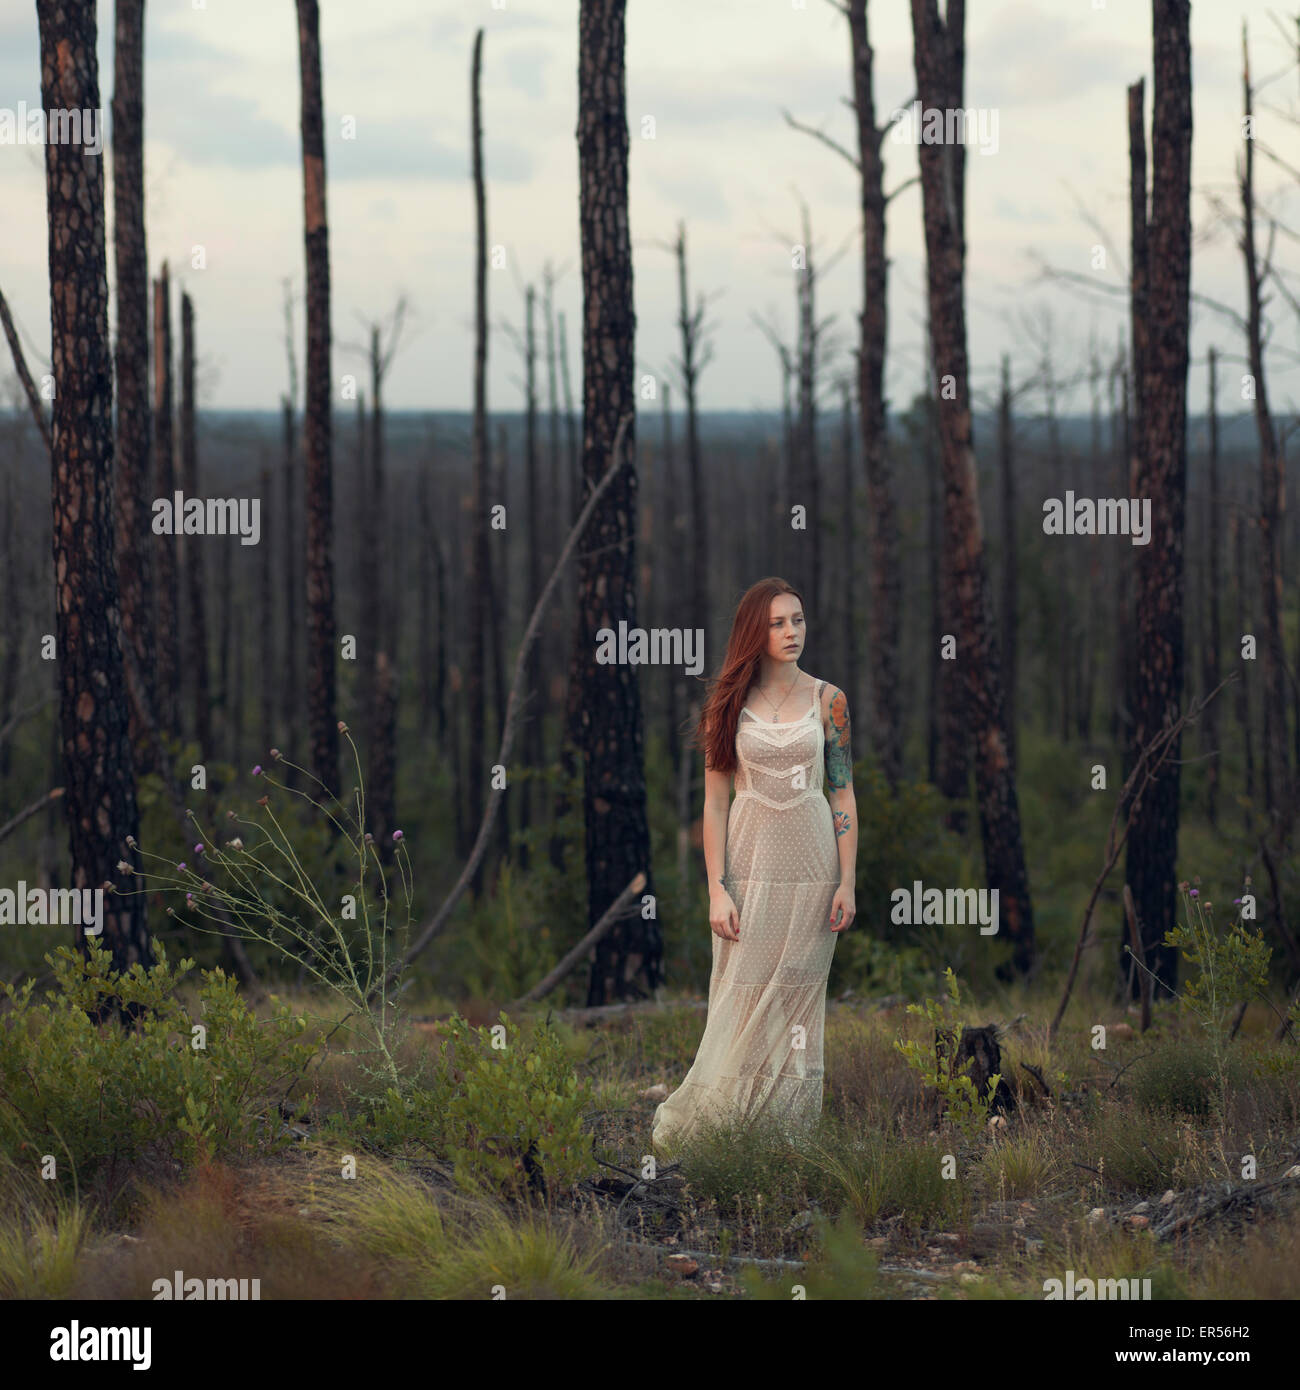 Woman stands in field recovering from forest fire - Stock Image